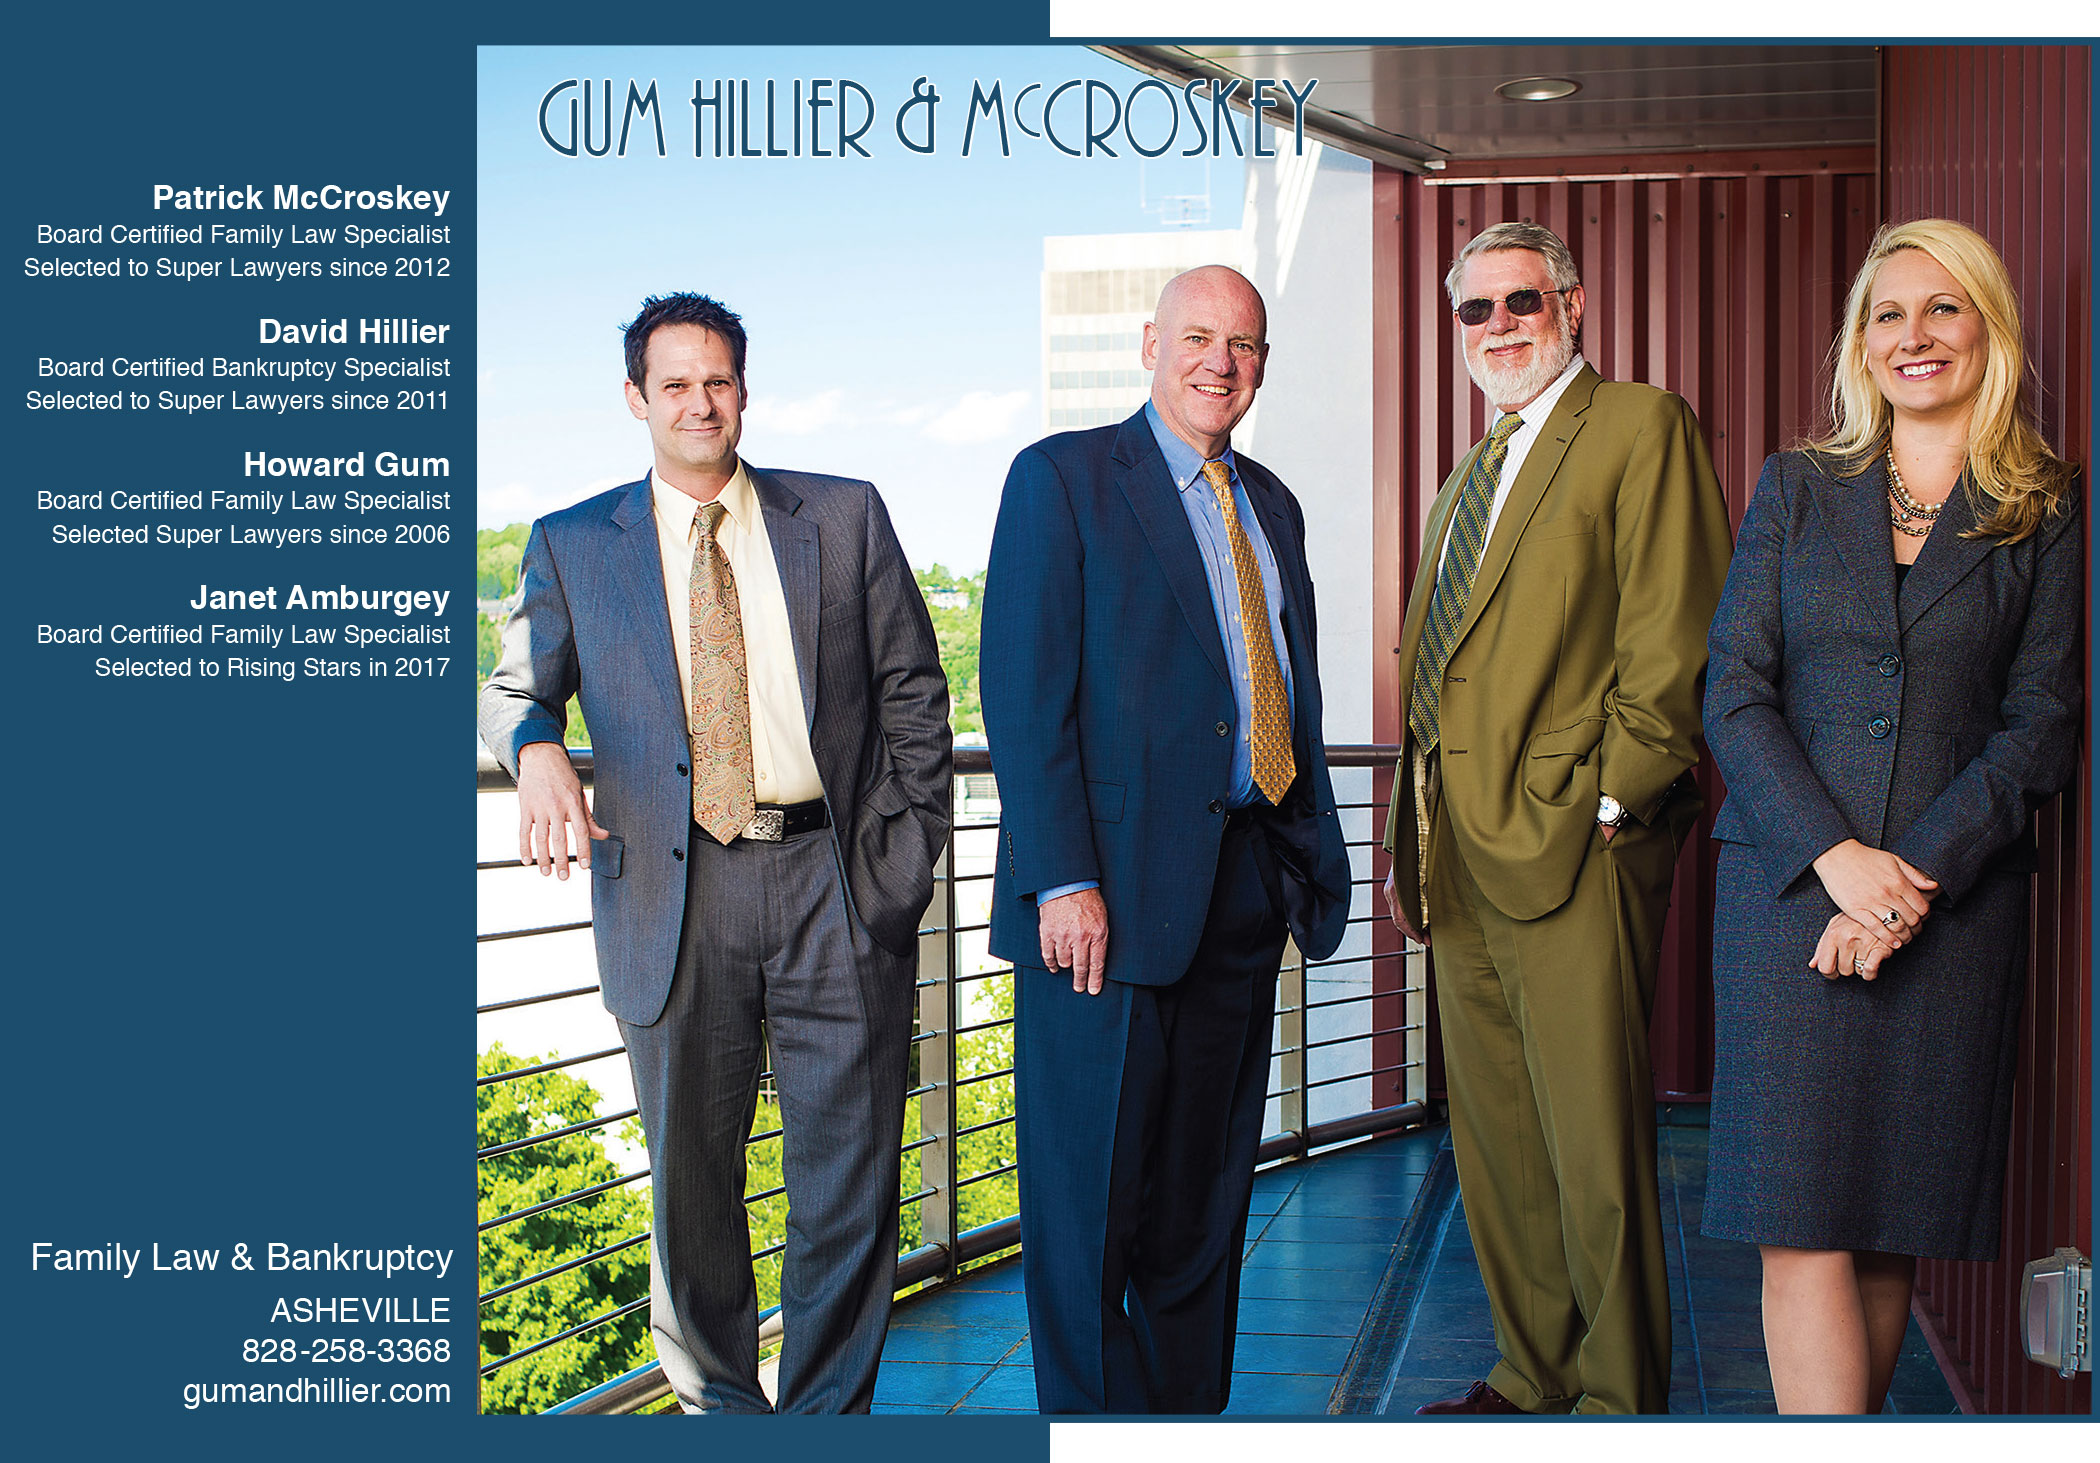 Advertisement image of Gum, Hillier & McCroskey's 2017 Super Lawyers Magazine Ad celebrating Janet Amburgey's first appearance on the list. Image taken on a balcony at one of the hotels in downtown Asheville.